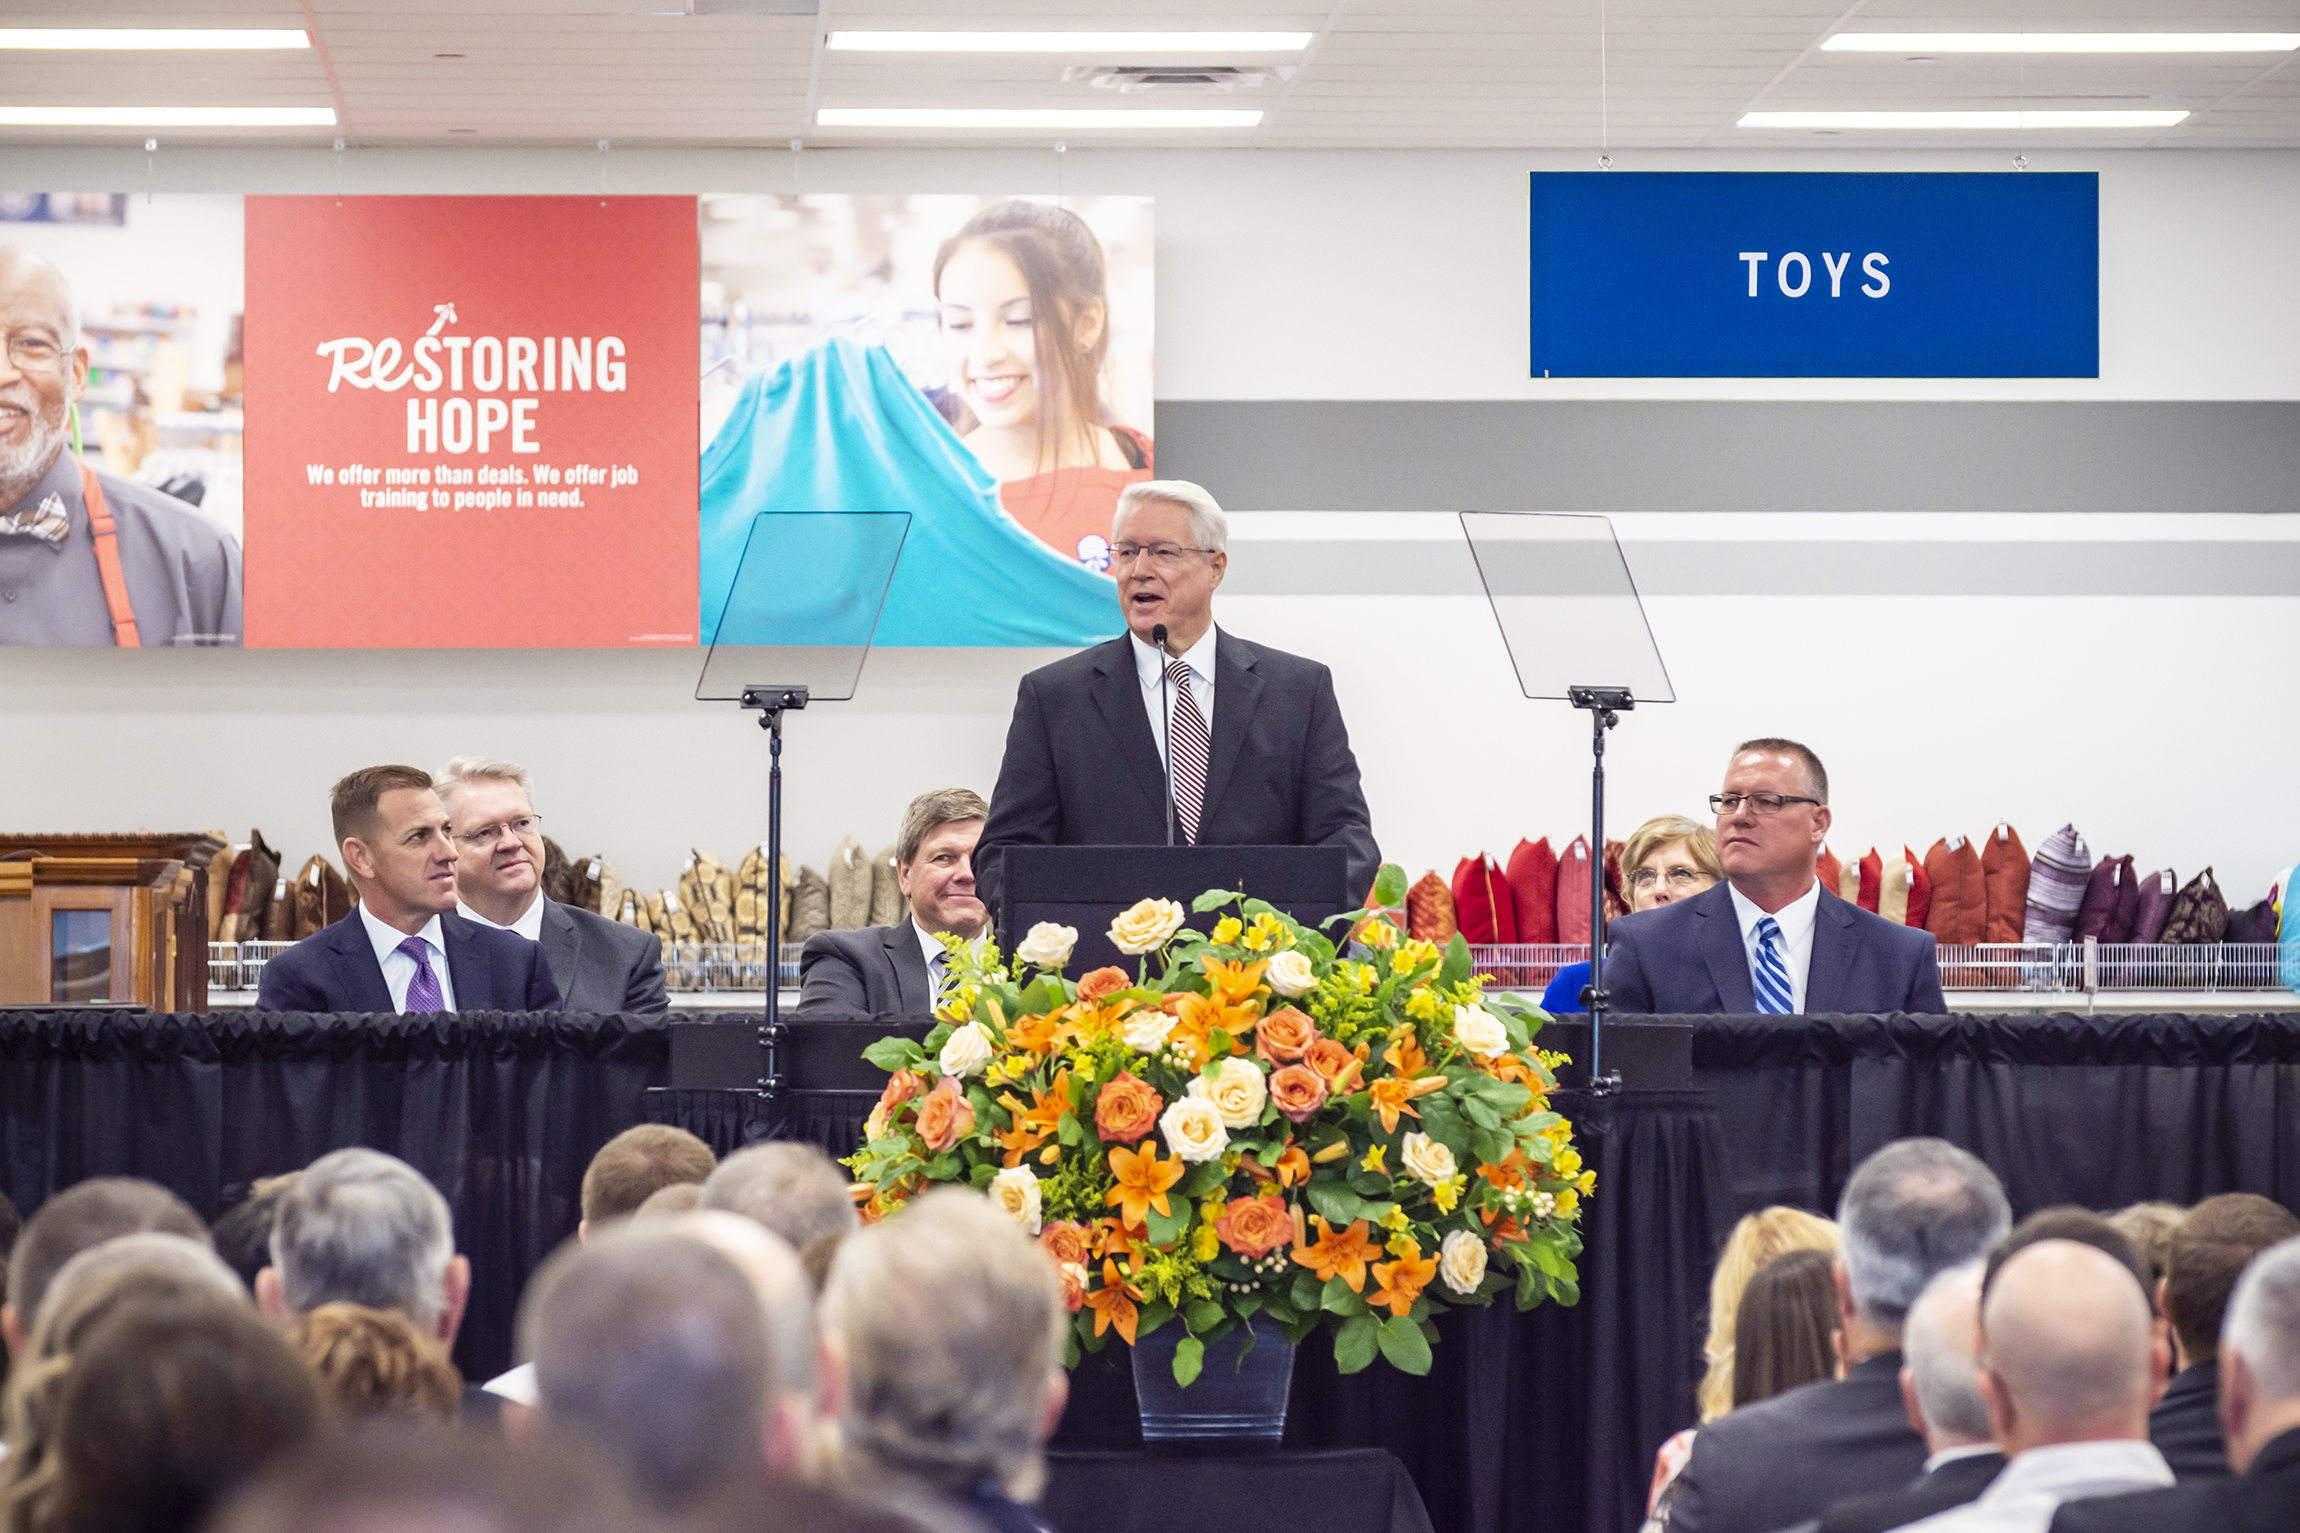 Bishop Dean M. Davies of the Presiding Bishopric of The Church of Jesus Christ of Latter-day Saints speaks at the dedication of the new Deseret Industries facility in Gilbert, Arizona, Oct. 20, 2018.